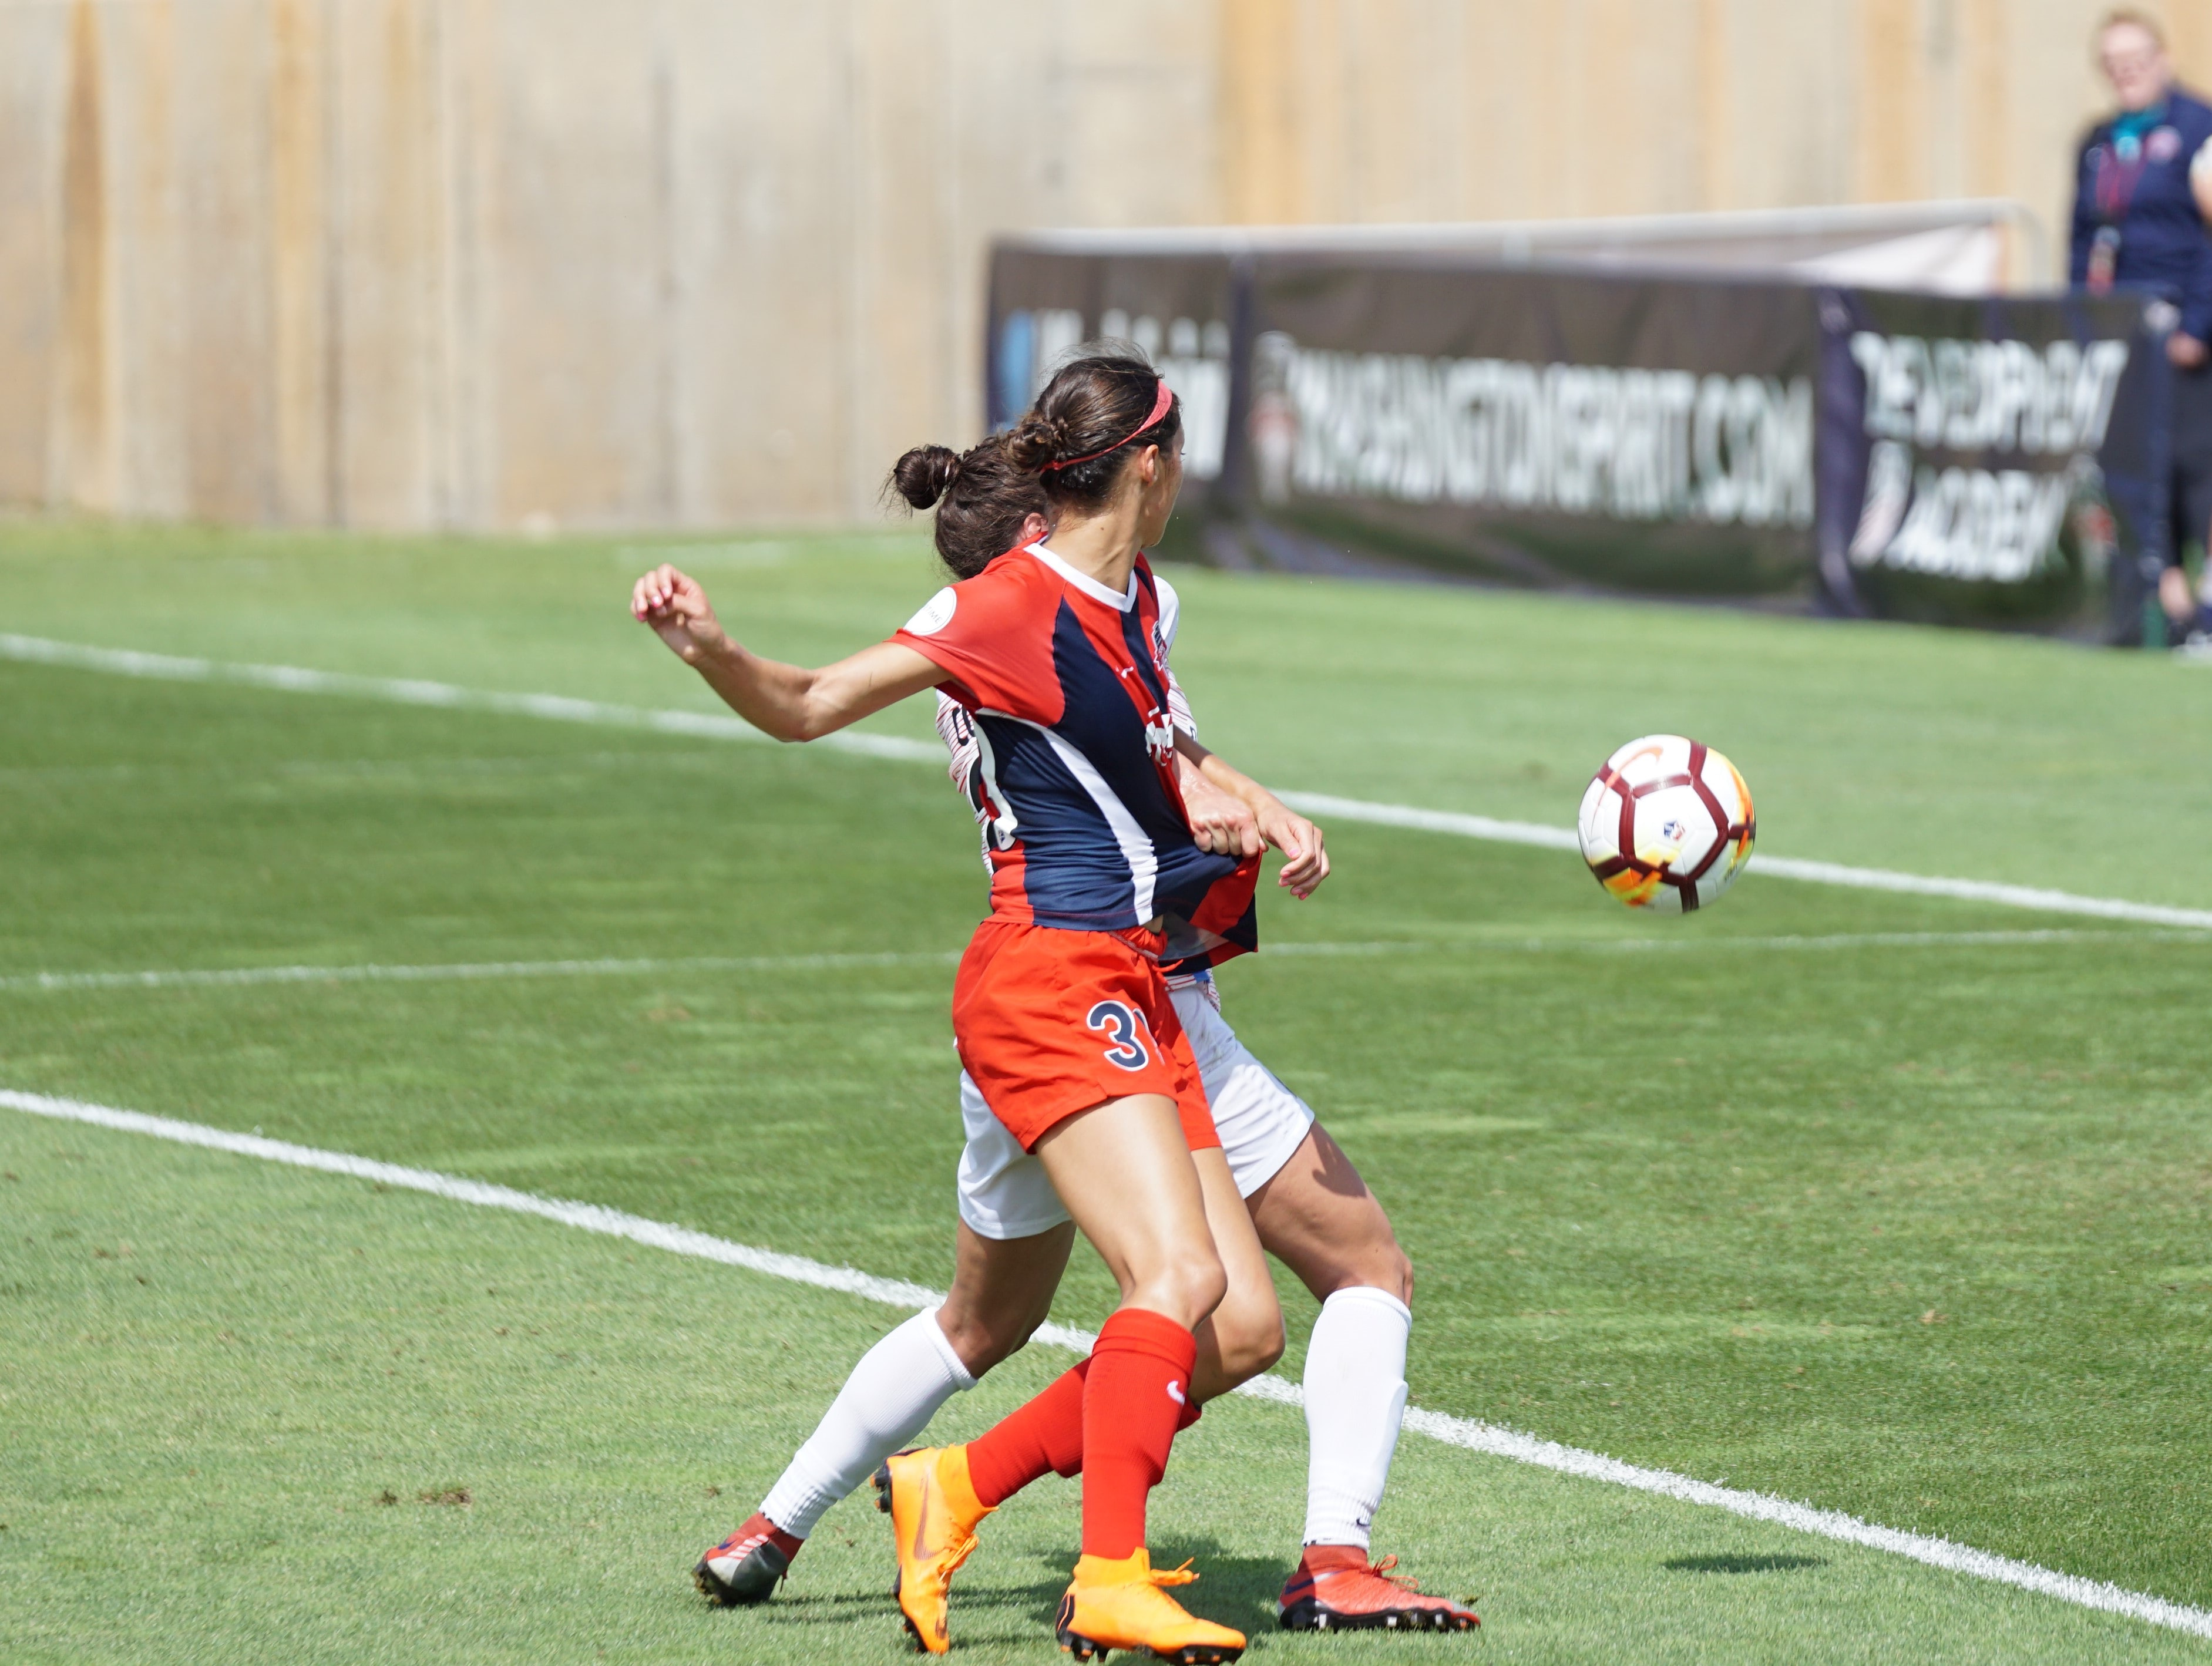 two women soccer player standing on soccer field at daytime